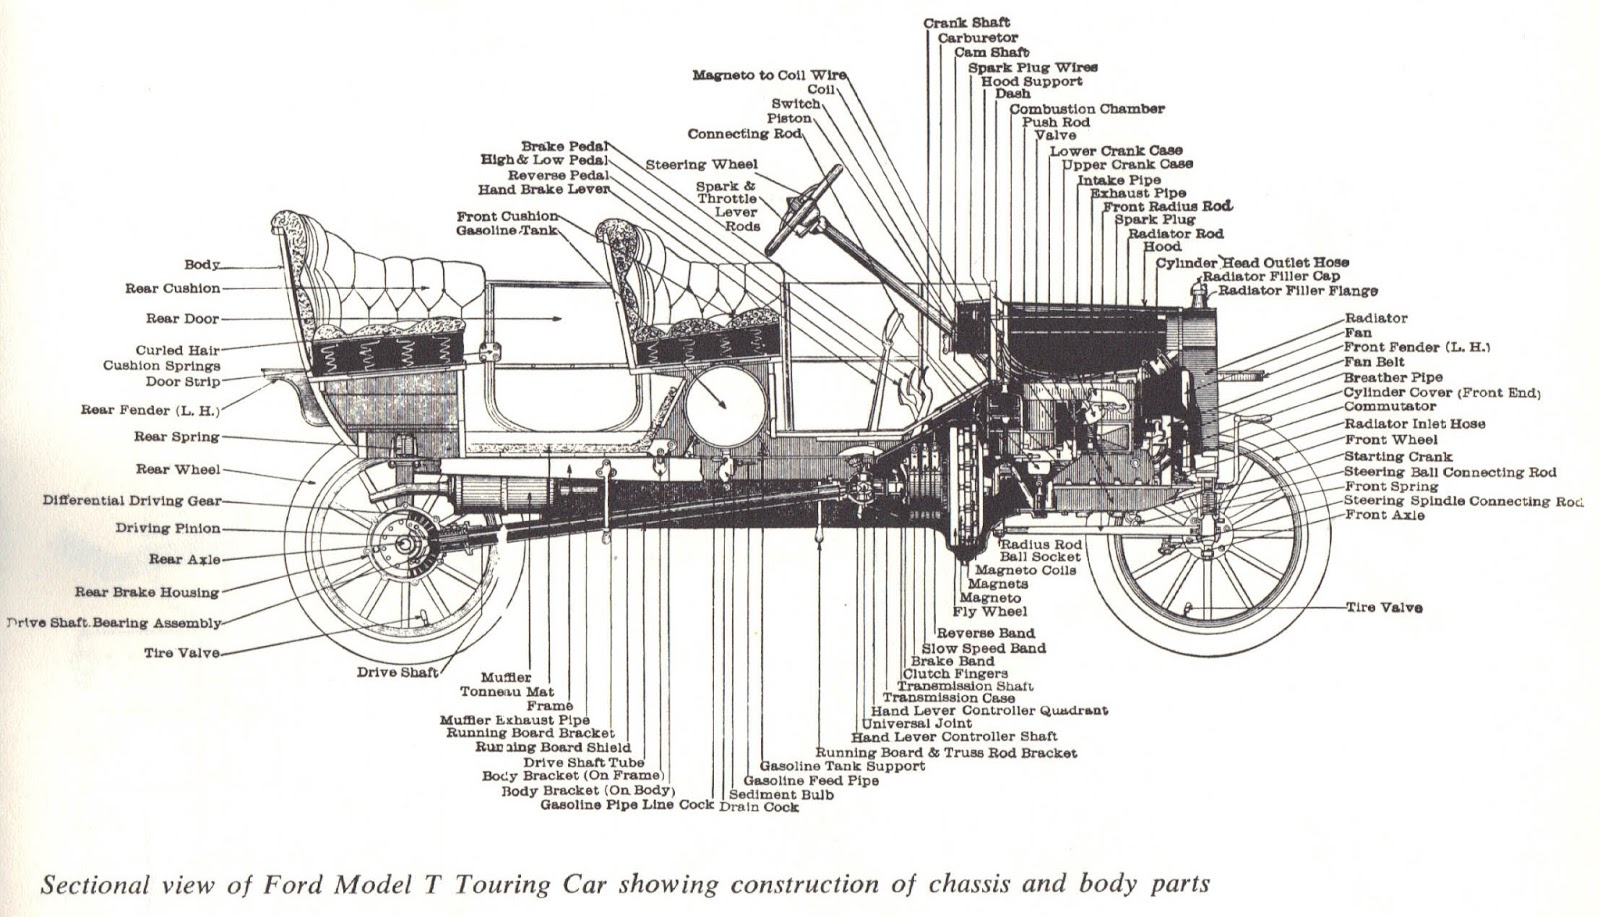 1927 ford model t diagrams advance wiring diagram 1909 model t wiring diagram [ 1600 x 917 Pixel ]